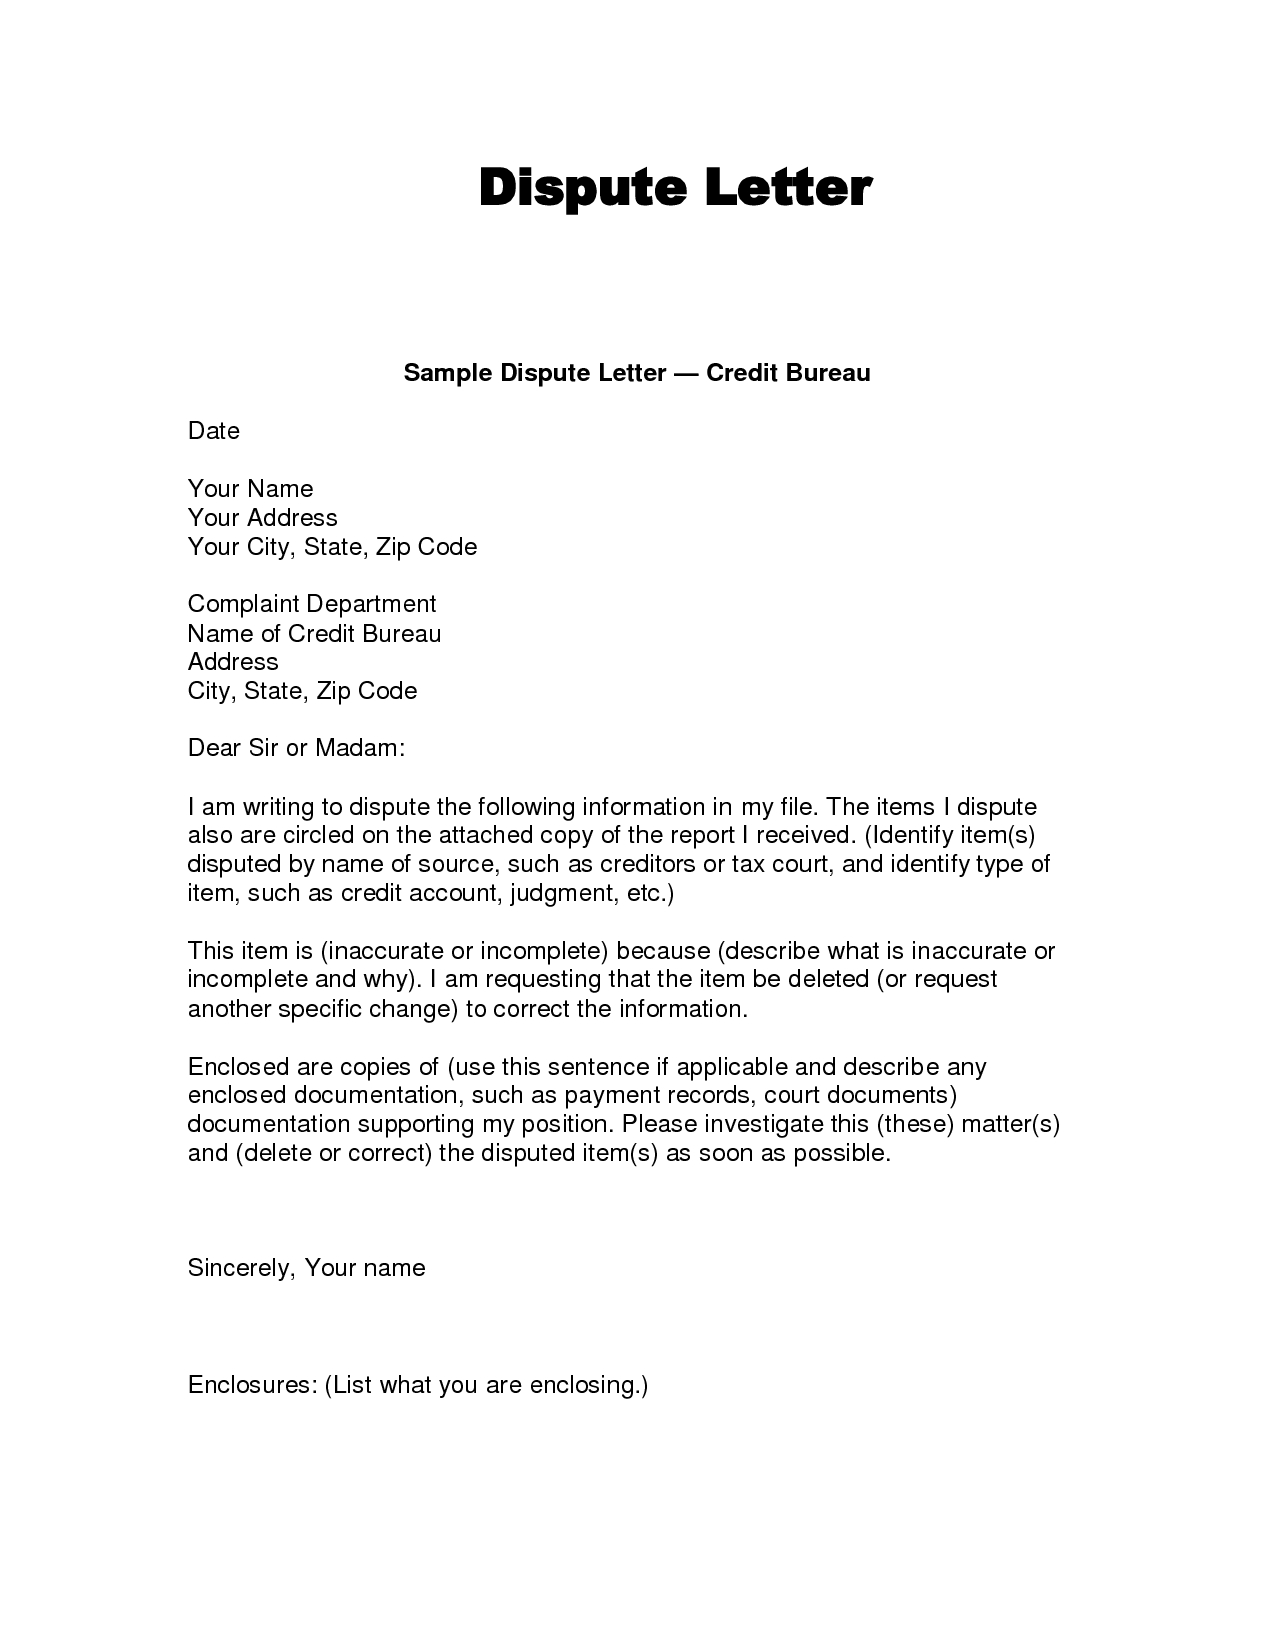 Writing Dispute Letter Format  Make A Habit   Credit Bureaus With Regard To Pay For Delete Letter Template